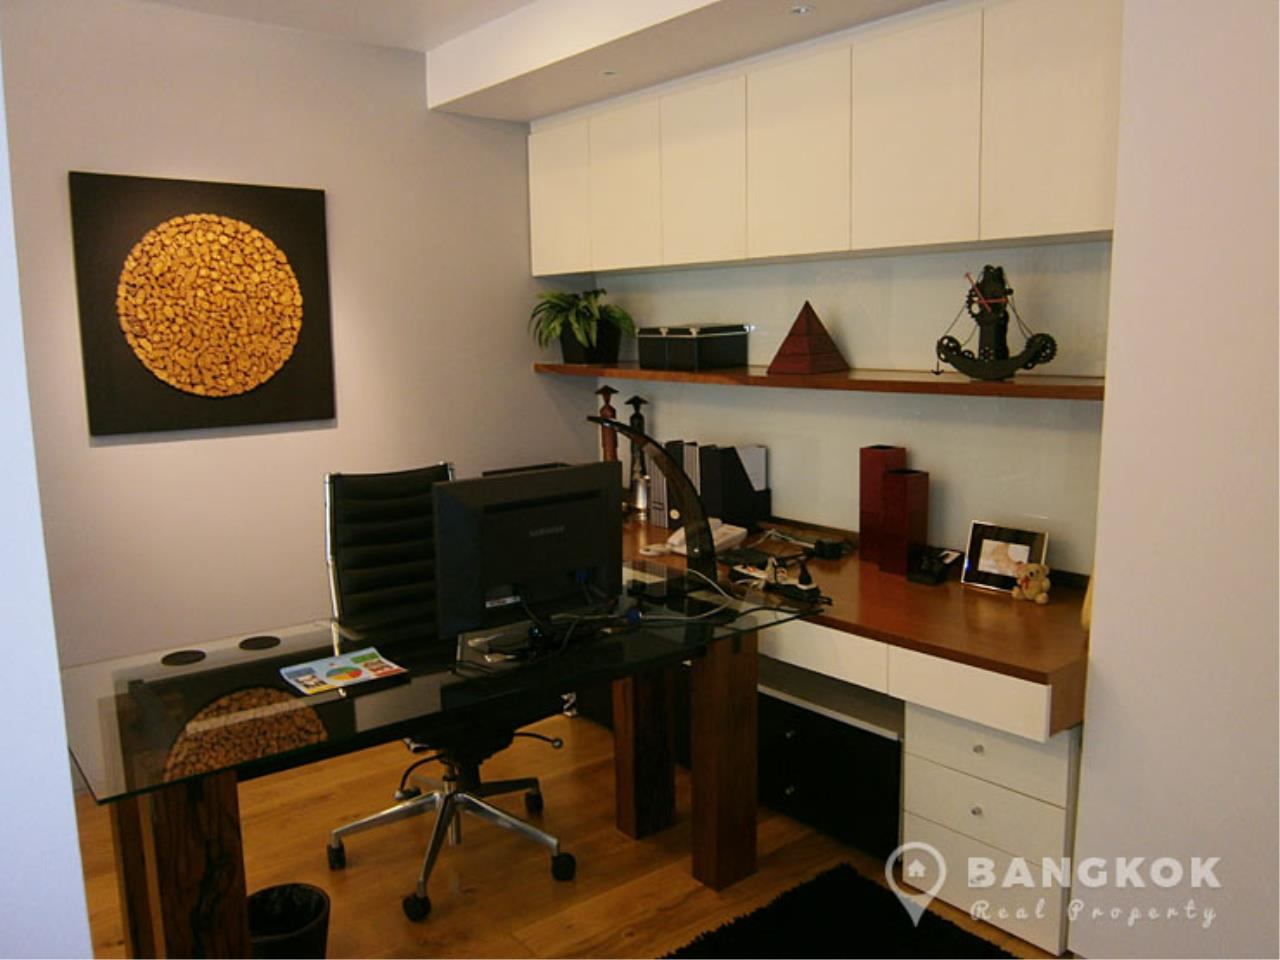 Bangkok Real Property Agency's Ficus Lane | A Fabulous Spacious 3 Bed 4 Bath Duplex near BTS 19